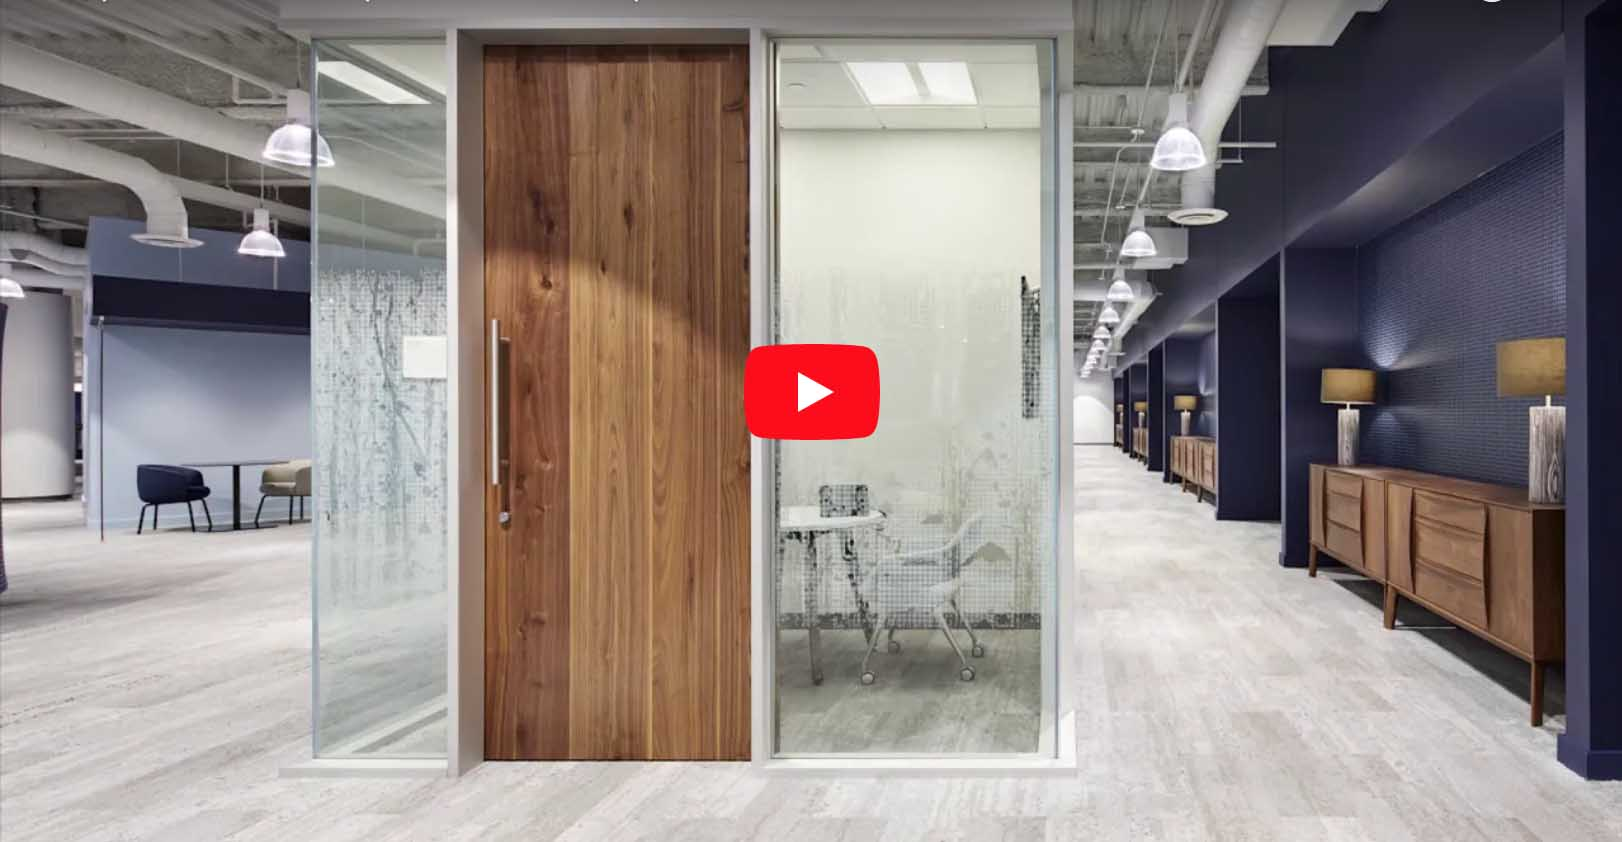 Peek inside Sleep Number's new Minneapolis Headquarters (Video)